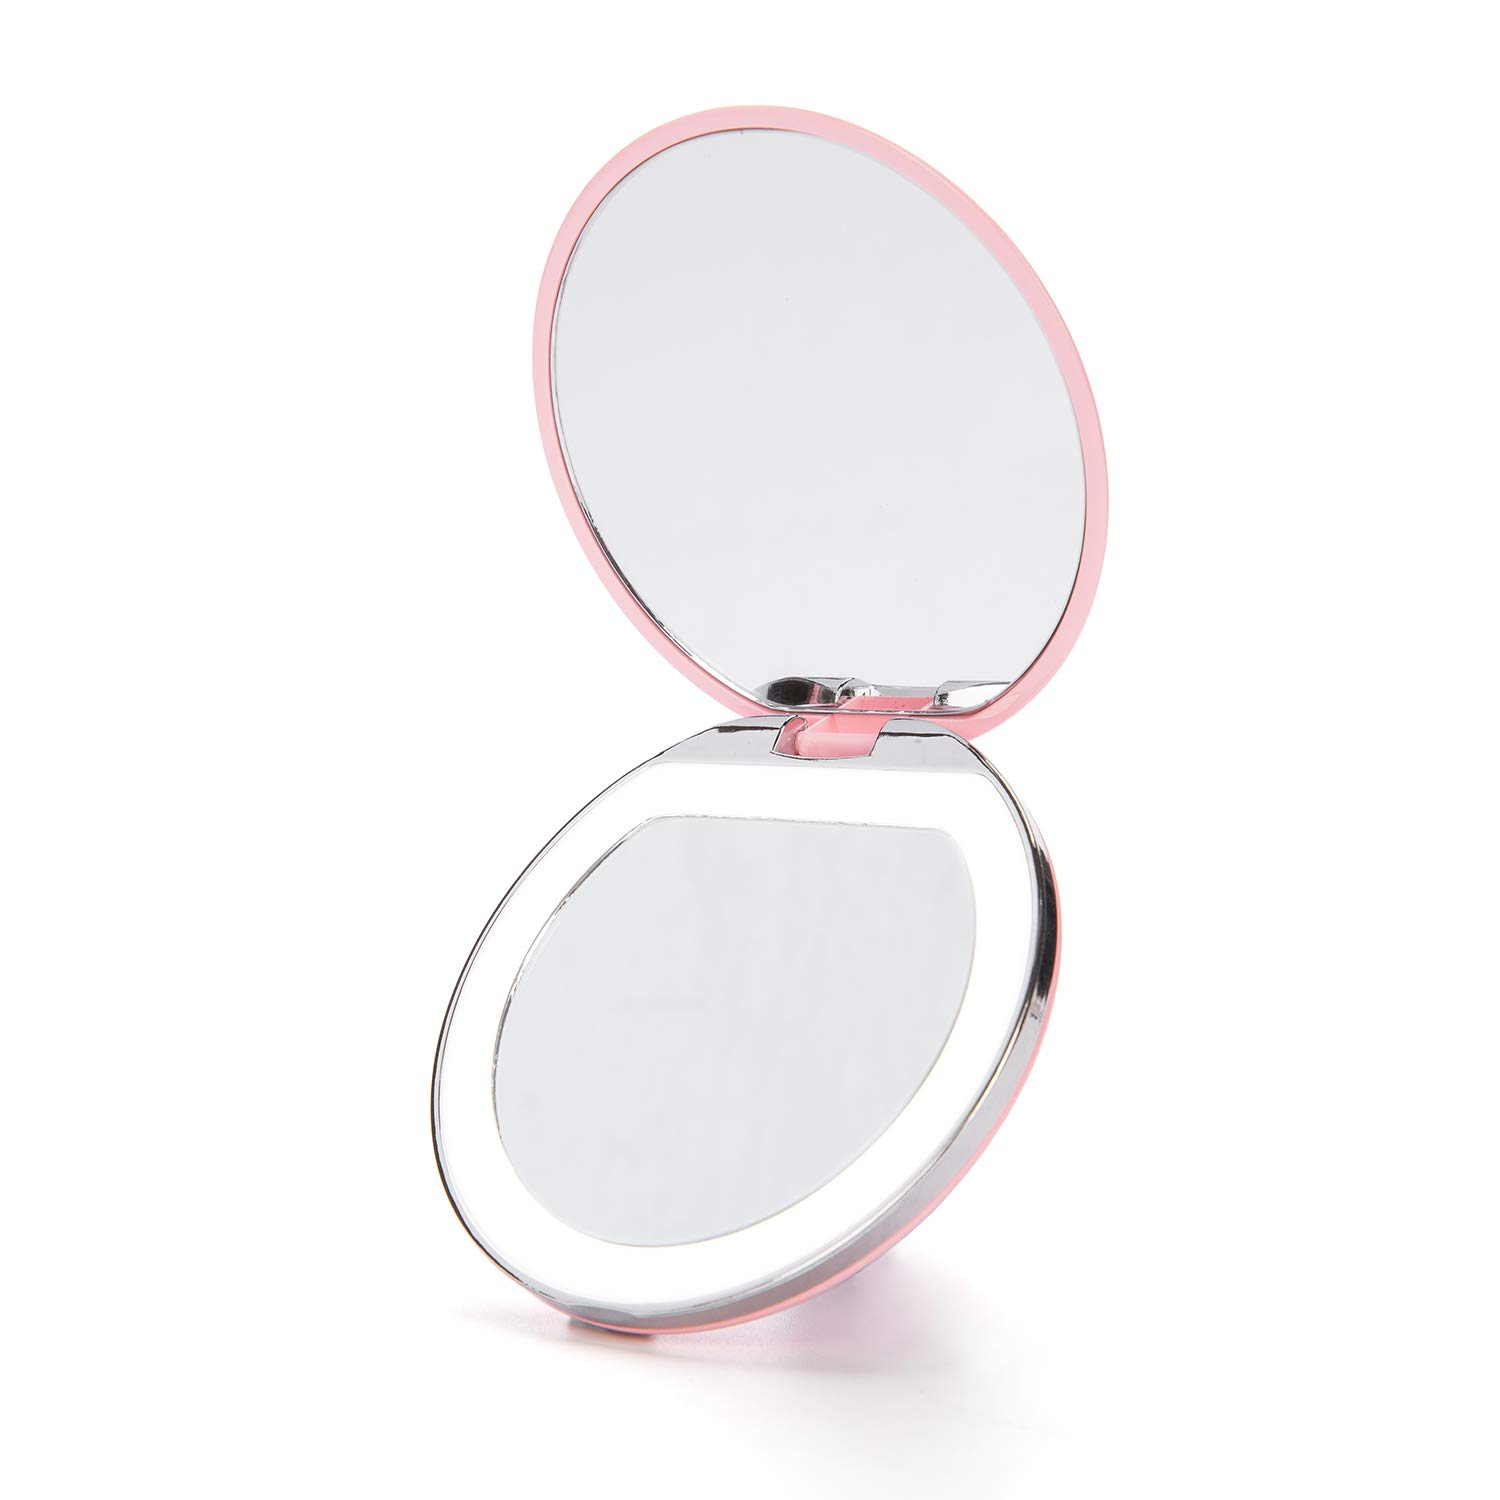 LED Lighted Travel Makeup Mirror – Compact,Exquisite,Handheld Portable Illuminated Folding Charging Travel Mirror 3inches 1x 3x Magnification